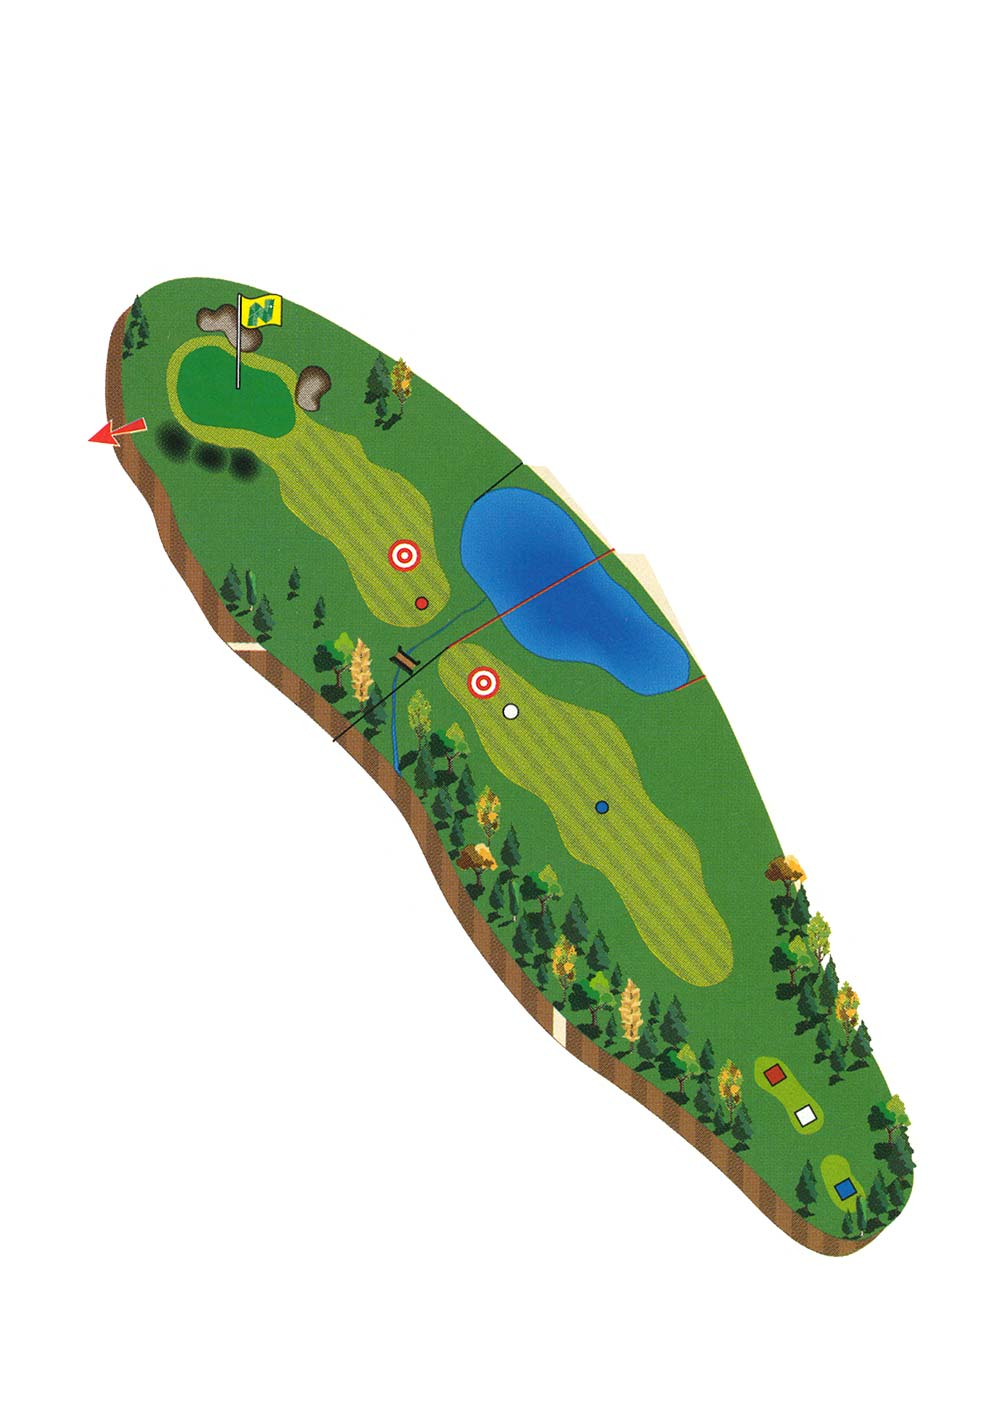 Course Description - Hole 10